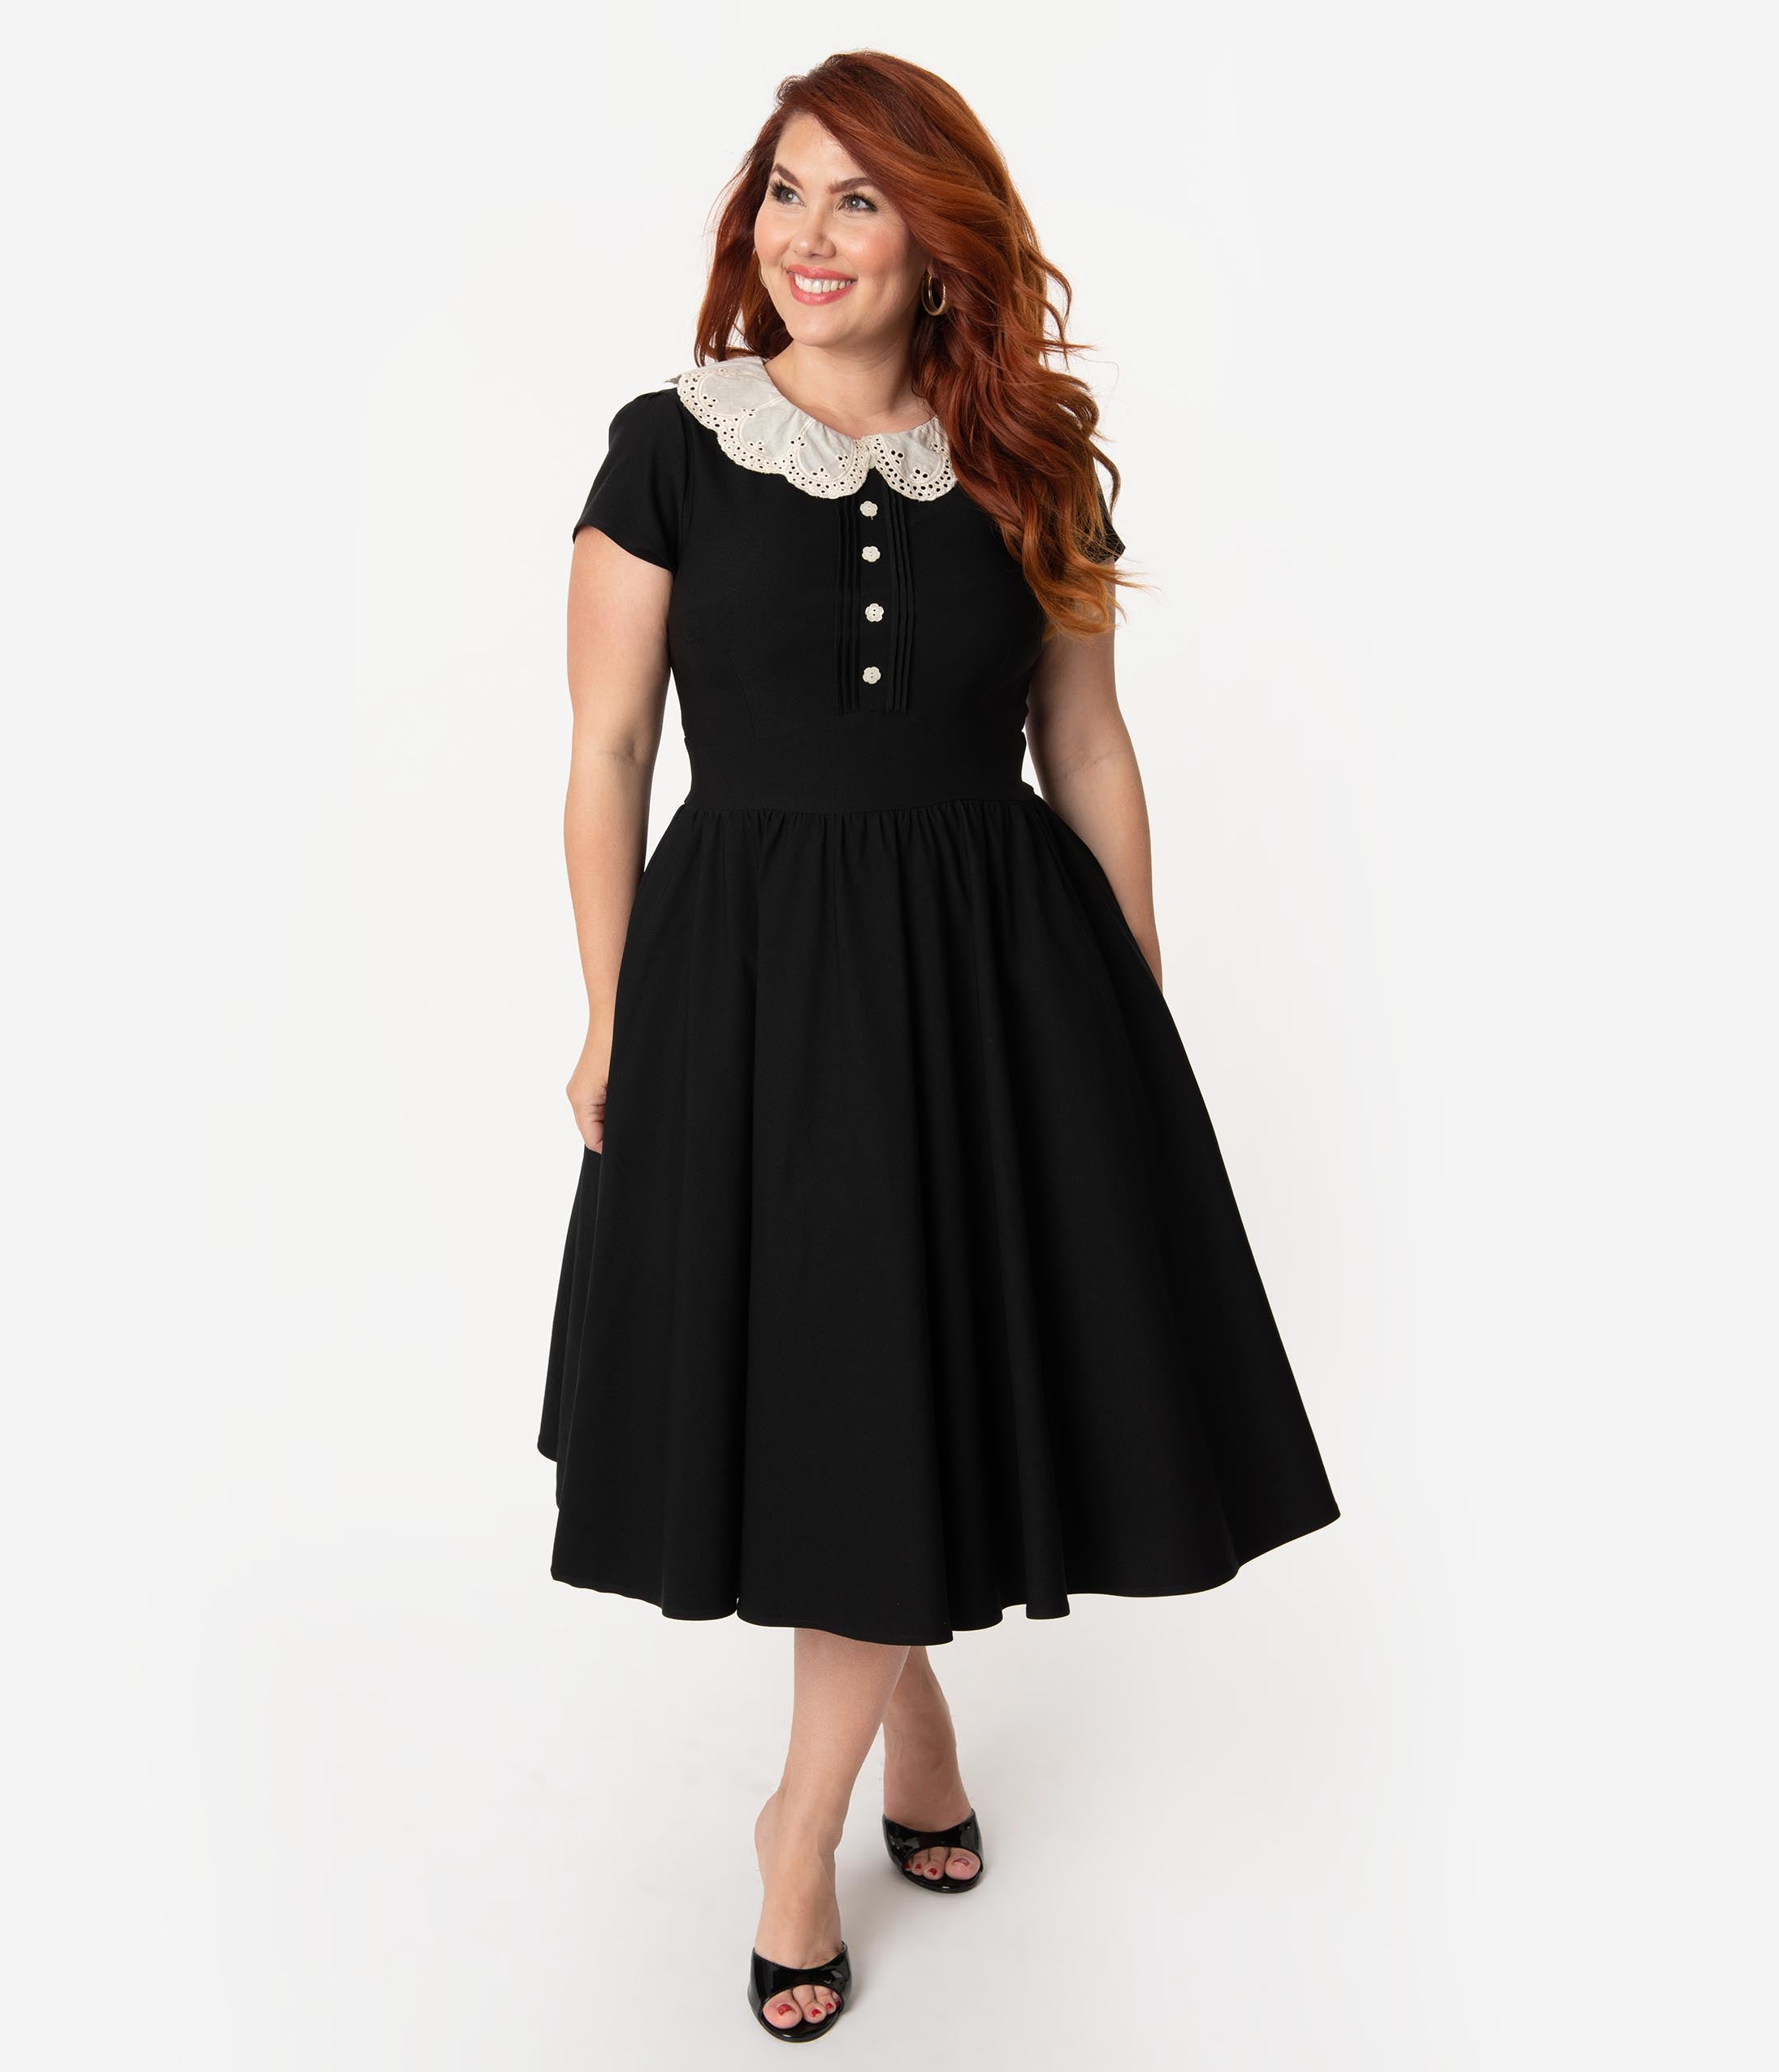 1950s Plus Size Dresses, Swing Dresses Stop Staring Plus Size Black With Lace Collar Gladil Swing Dress $141.00 AT vintagedancer.com